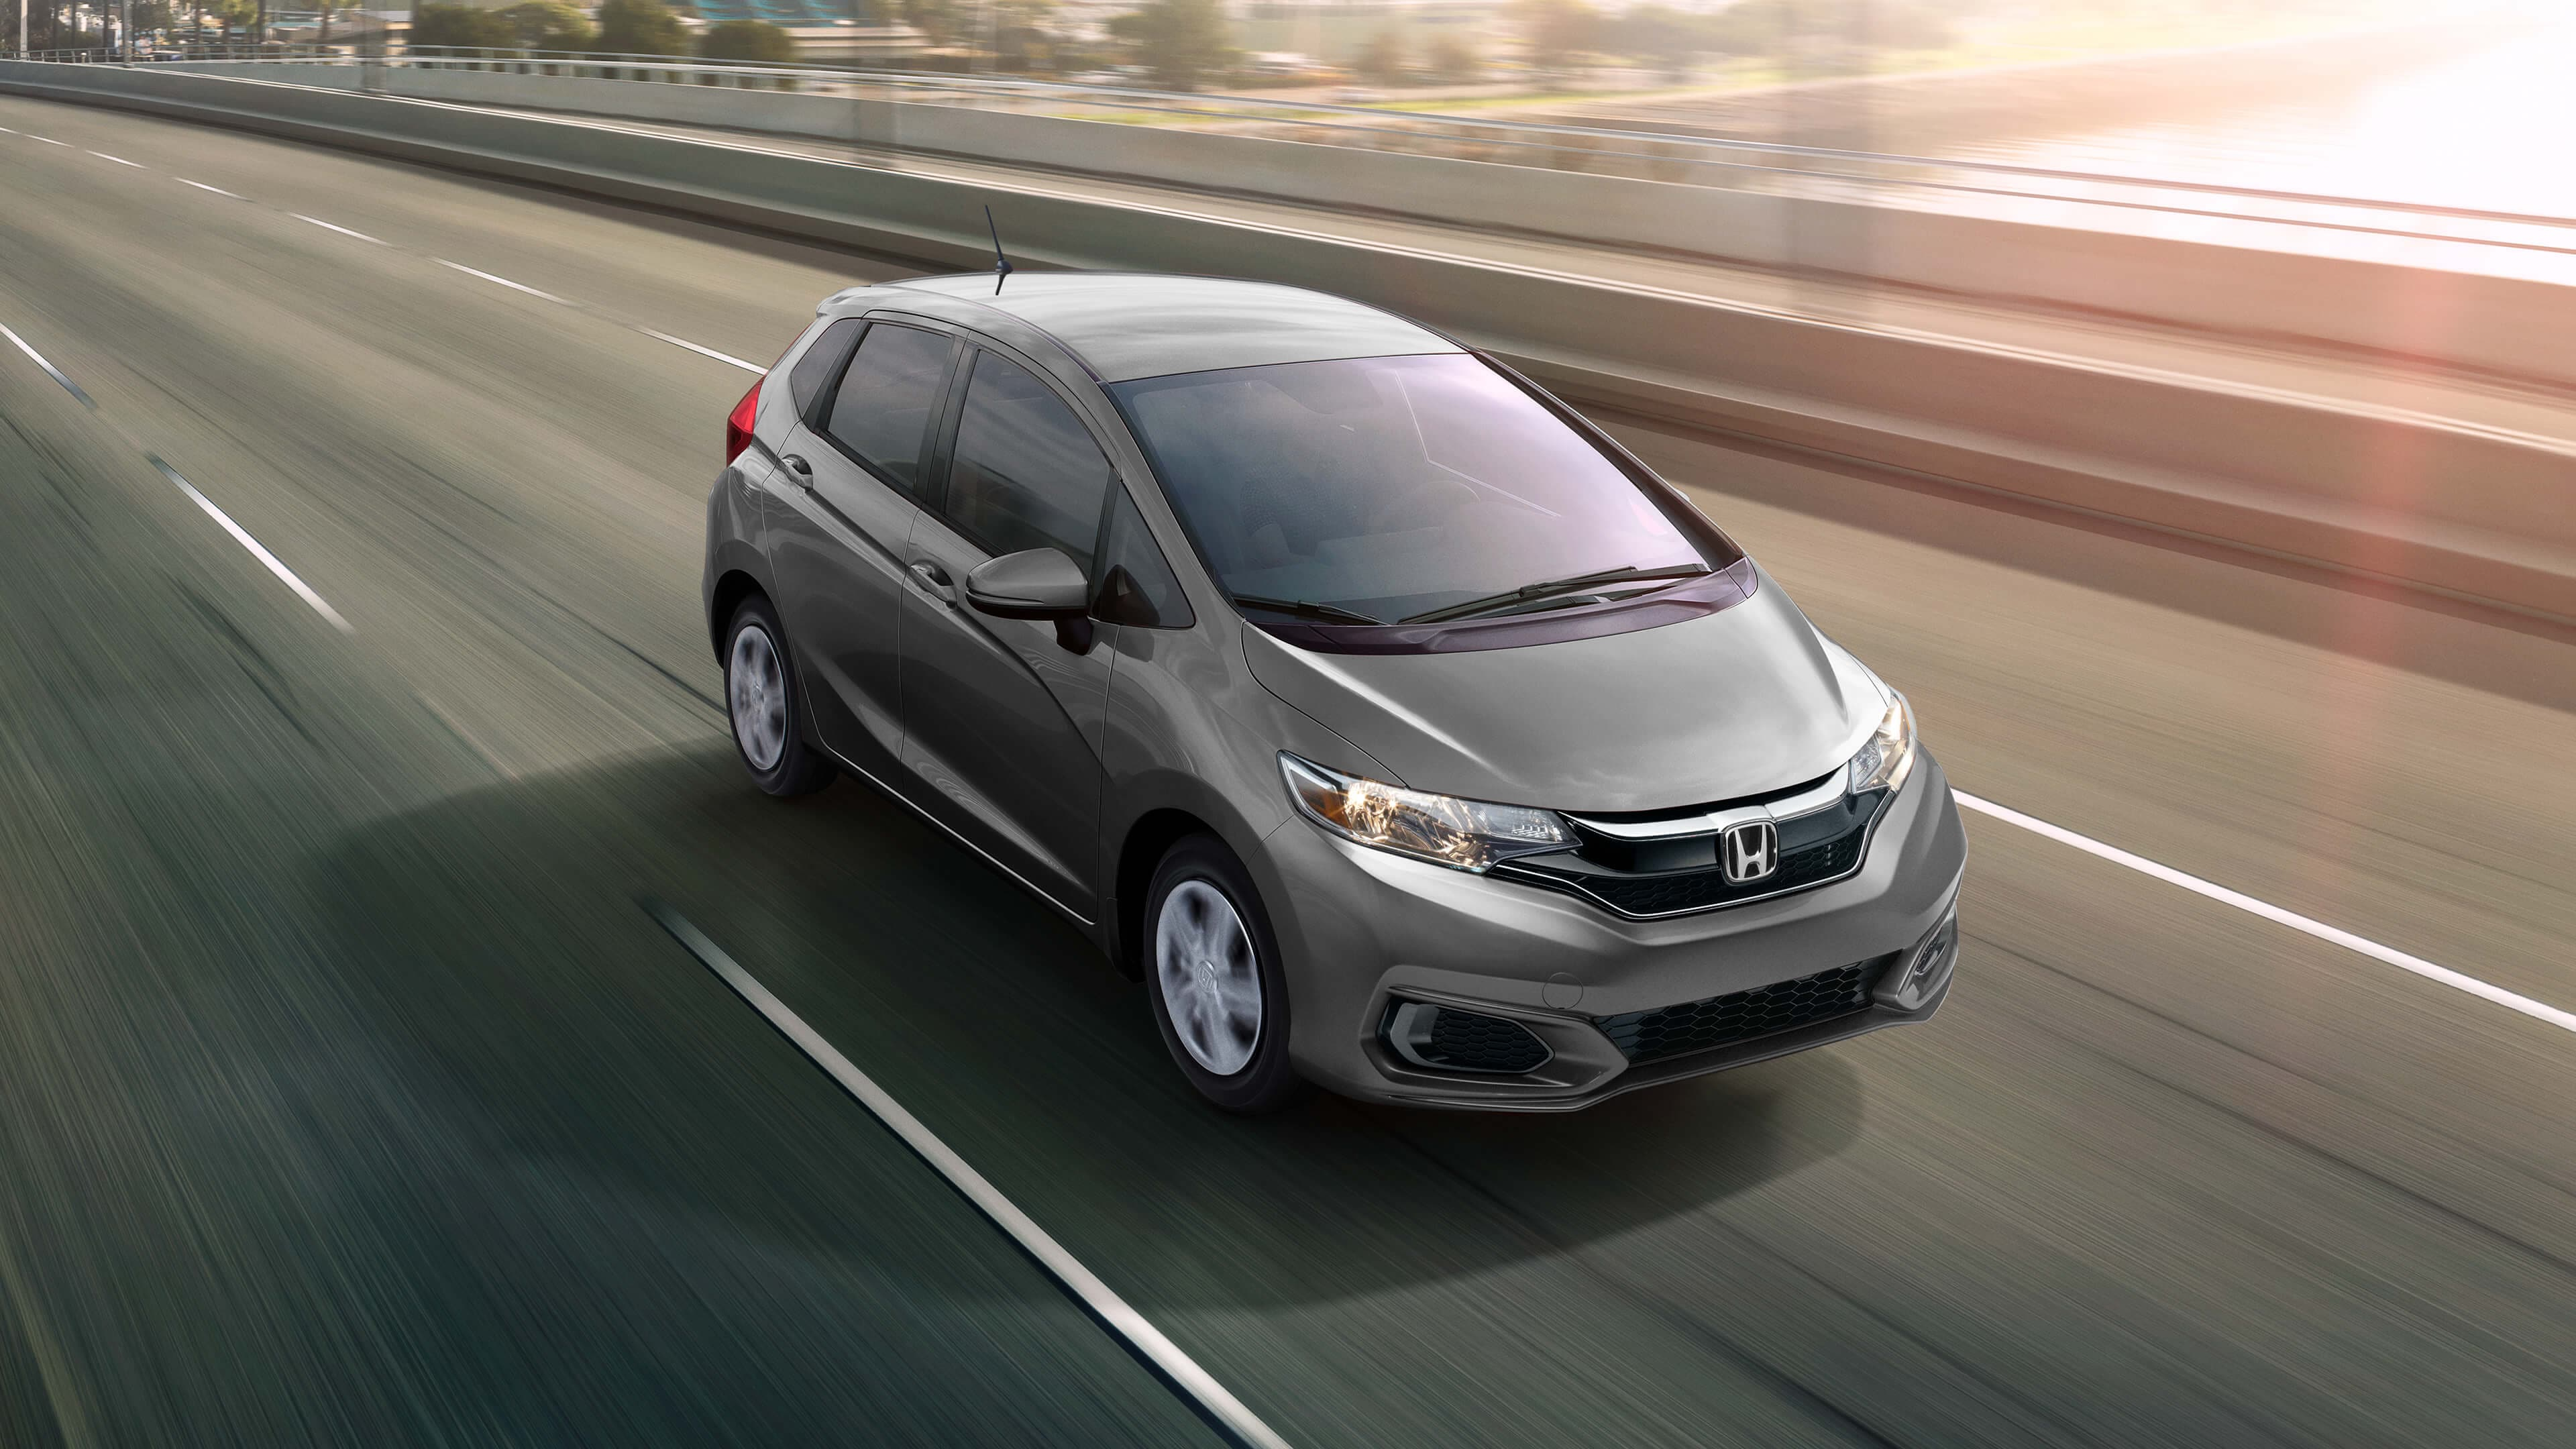 Honda Fit driving fast over a bridge